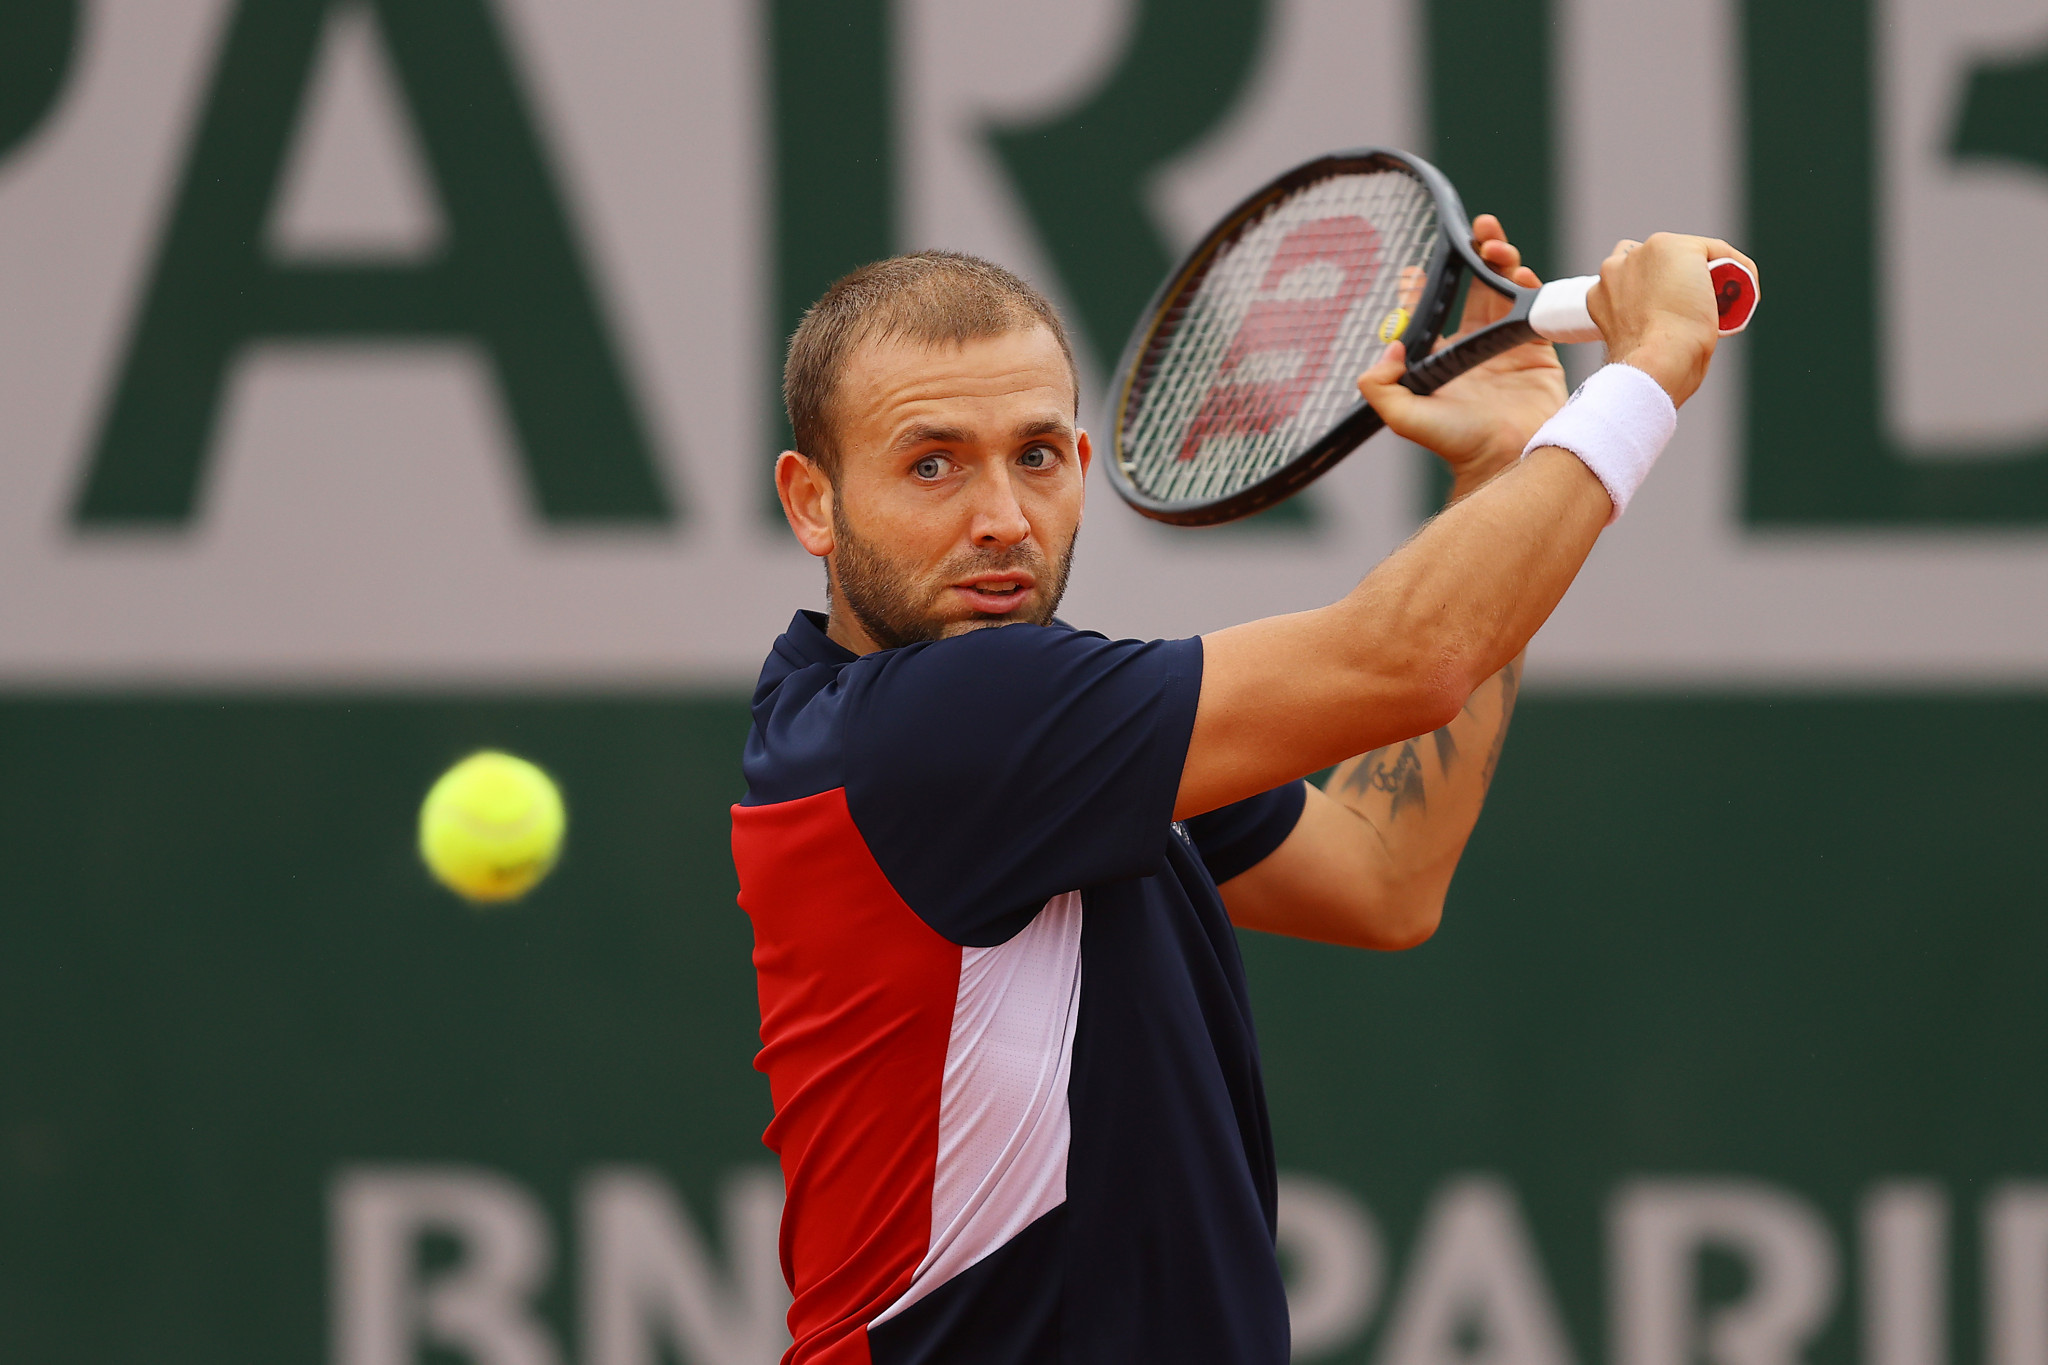 Evans criticises conduct of opponents after men's doubles row at French Open